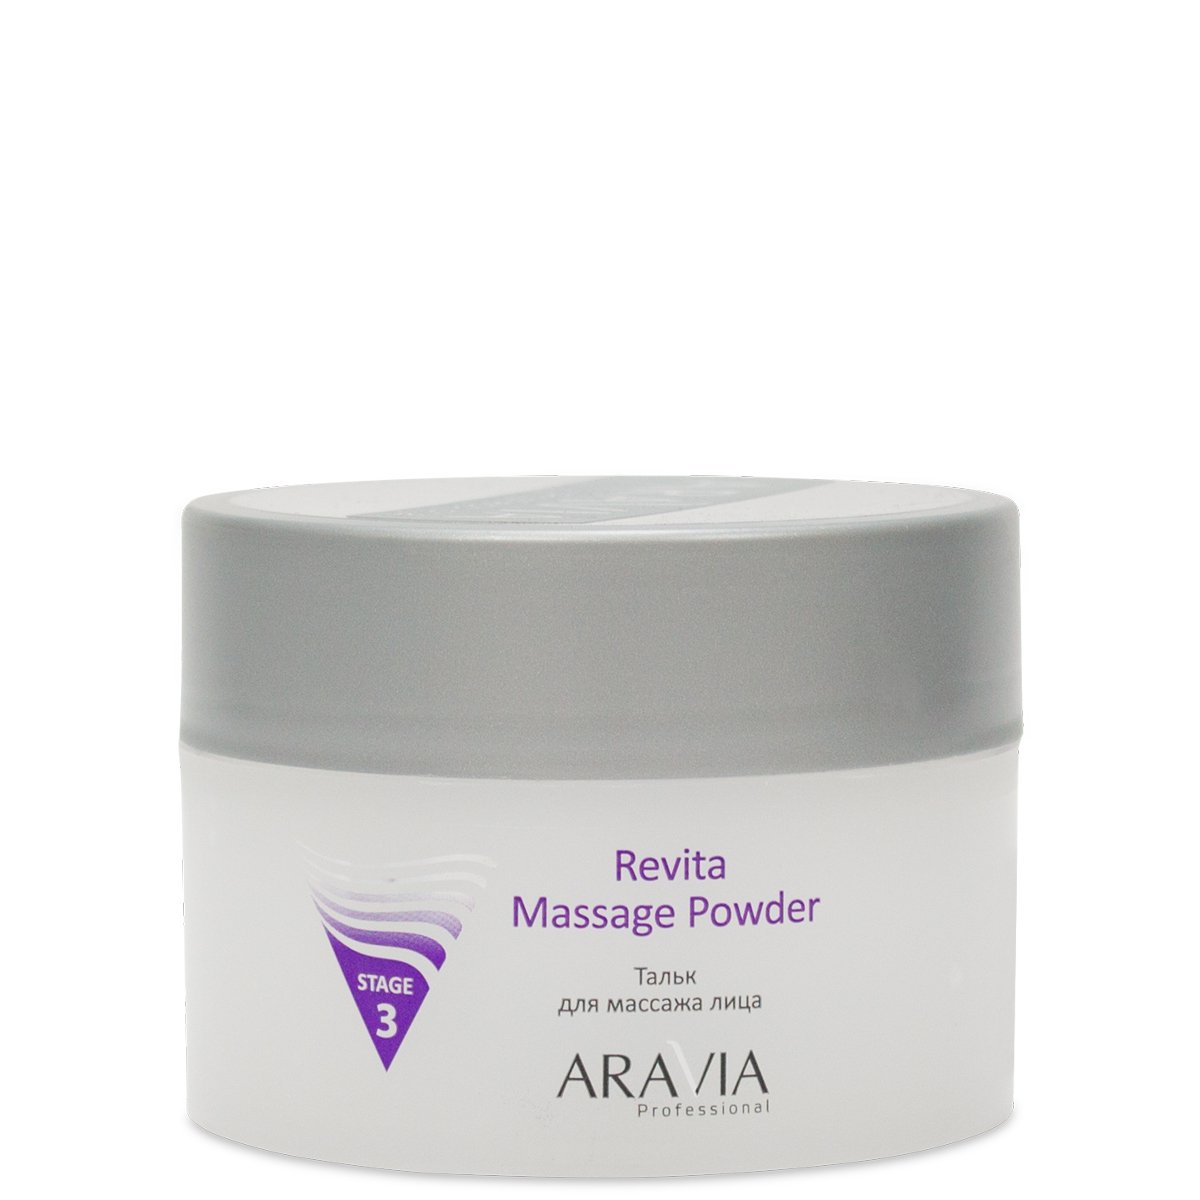 Aravia Revita Massage Powder Тальк для массажа лица (150 ml) 6008